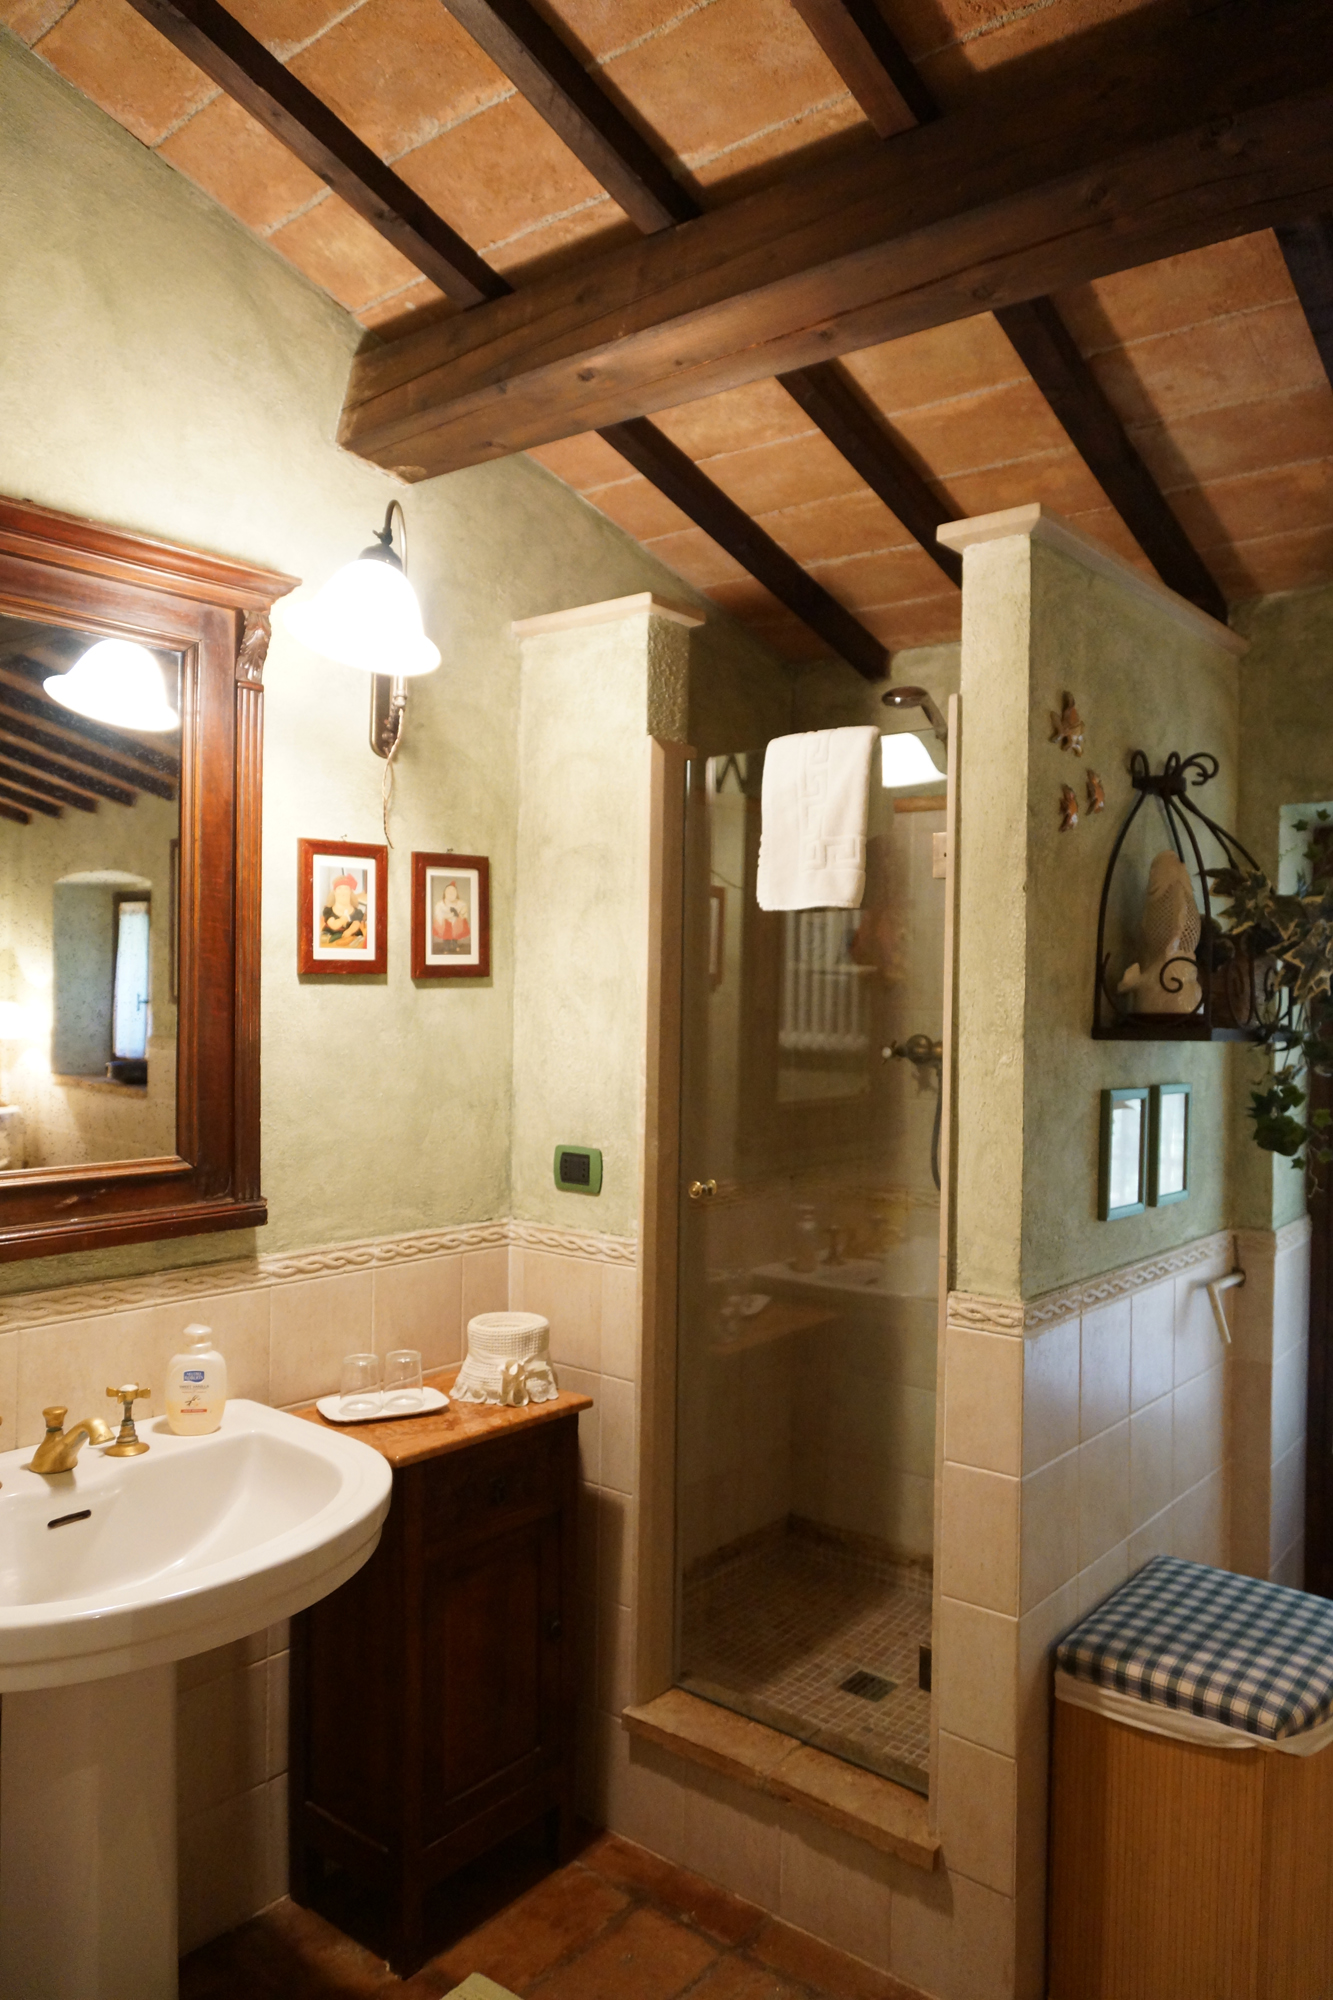 Vacanze in Umbria - Bed & Breakfast - umbria (MASSA MARTANA -  Perugia - PG) ~ bagno